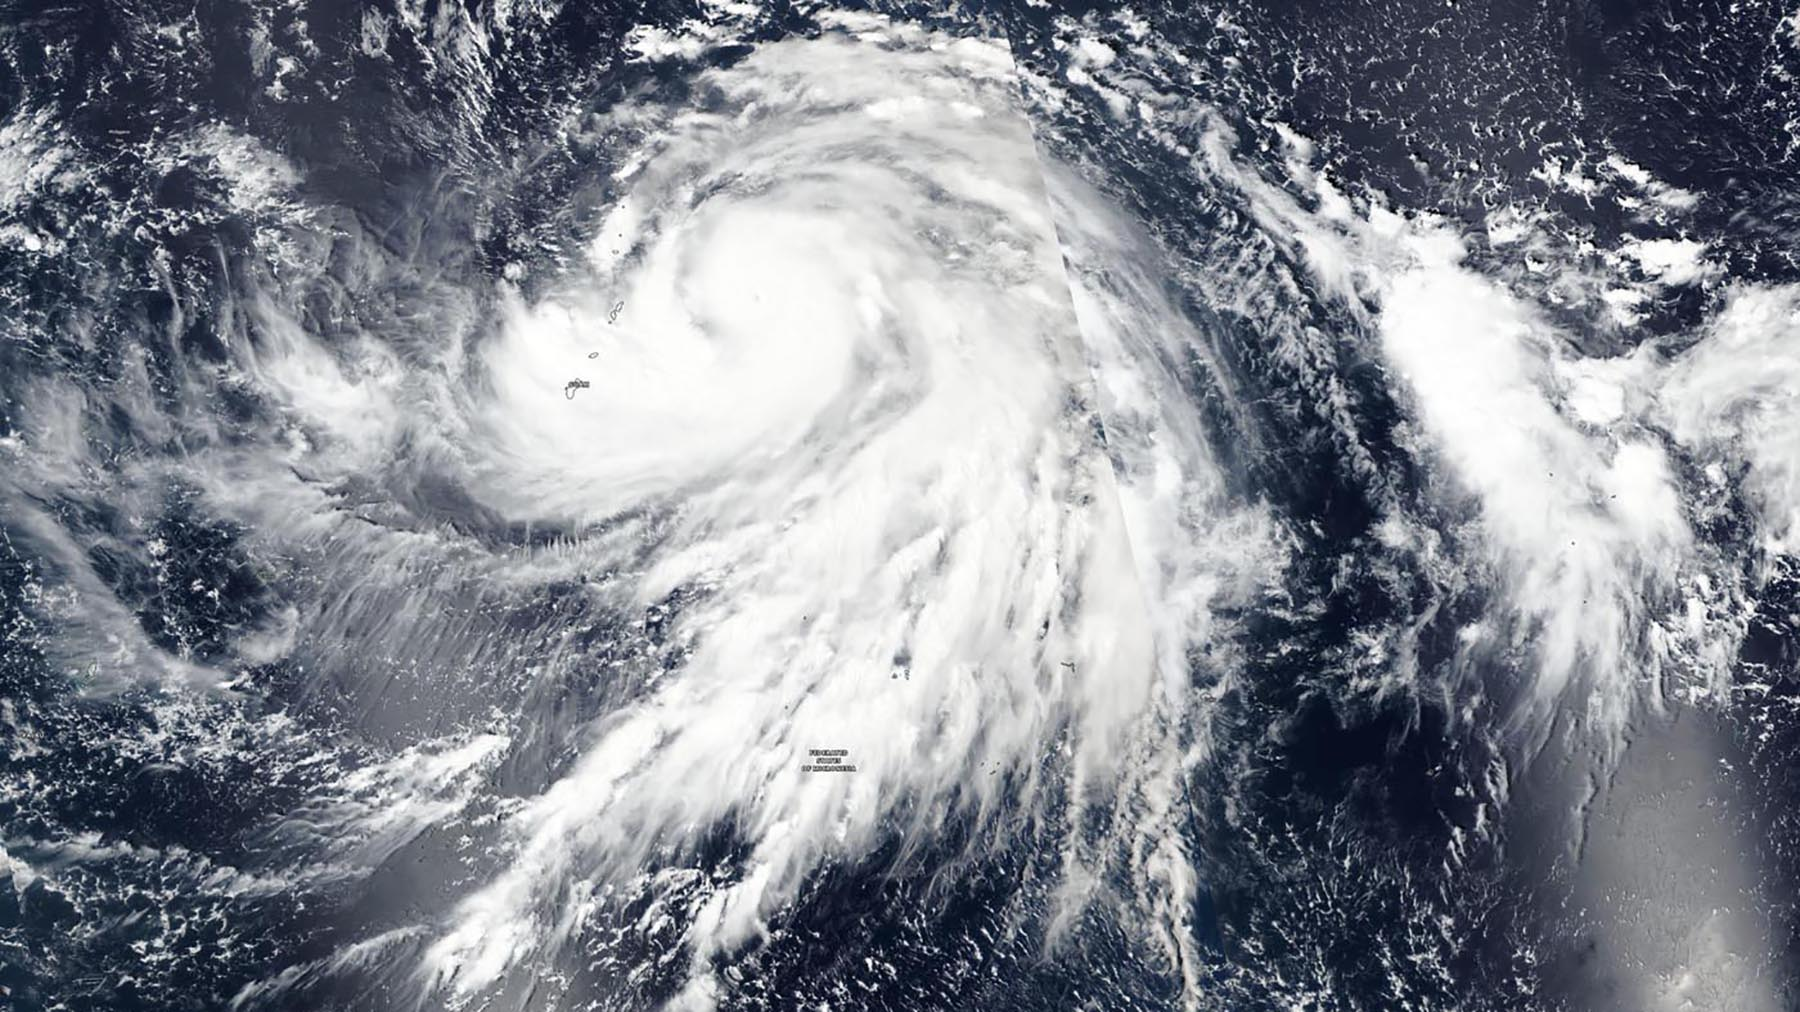 Super Typhoon Hagibis Rapidly Gathers Strength Over the Pacific